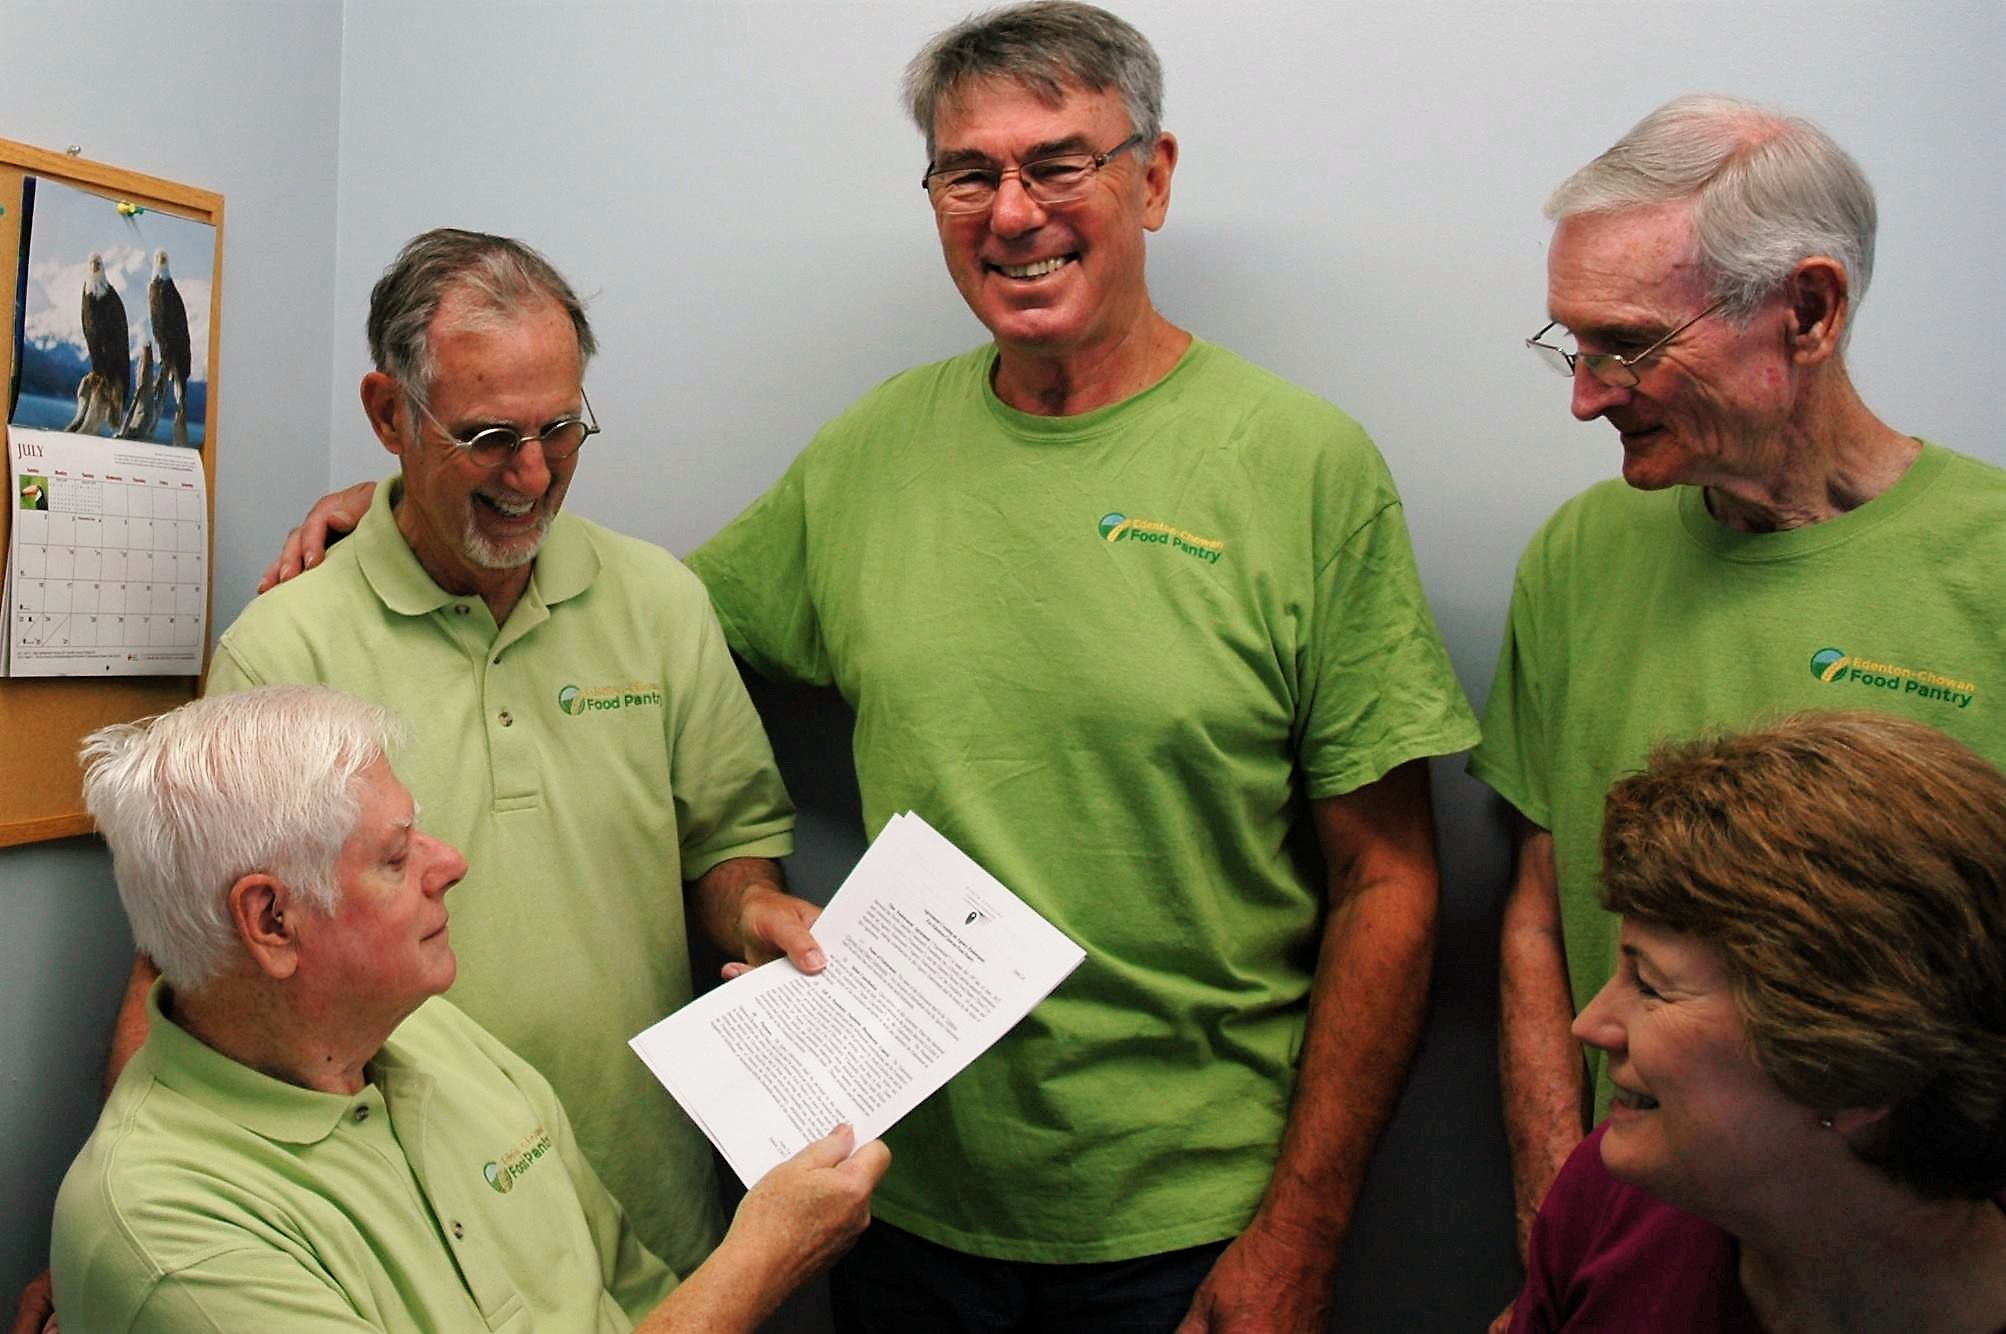 Food Pantry leaders (left to right) Bob Bastek, Roger Coleman, Gerard Cooney, Shaf Shaffer and Lisa Hoggard signing the paperwork to found the Pantry's endowment fund.